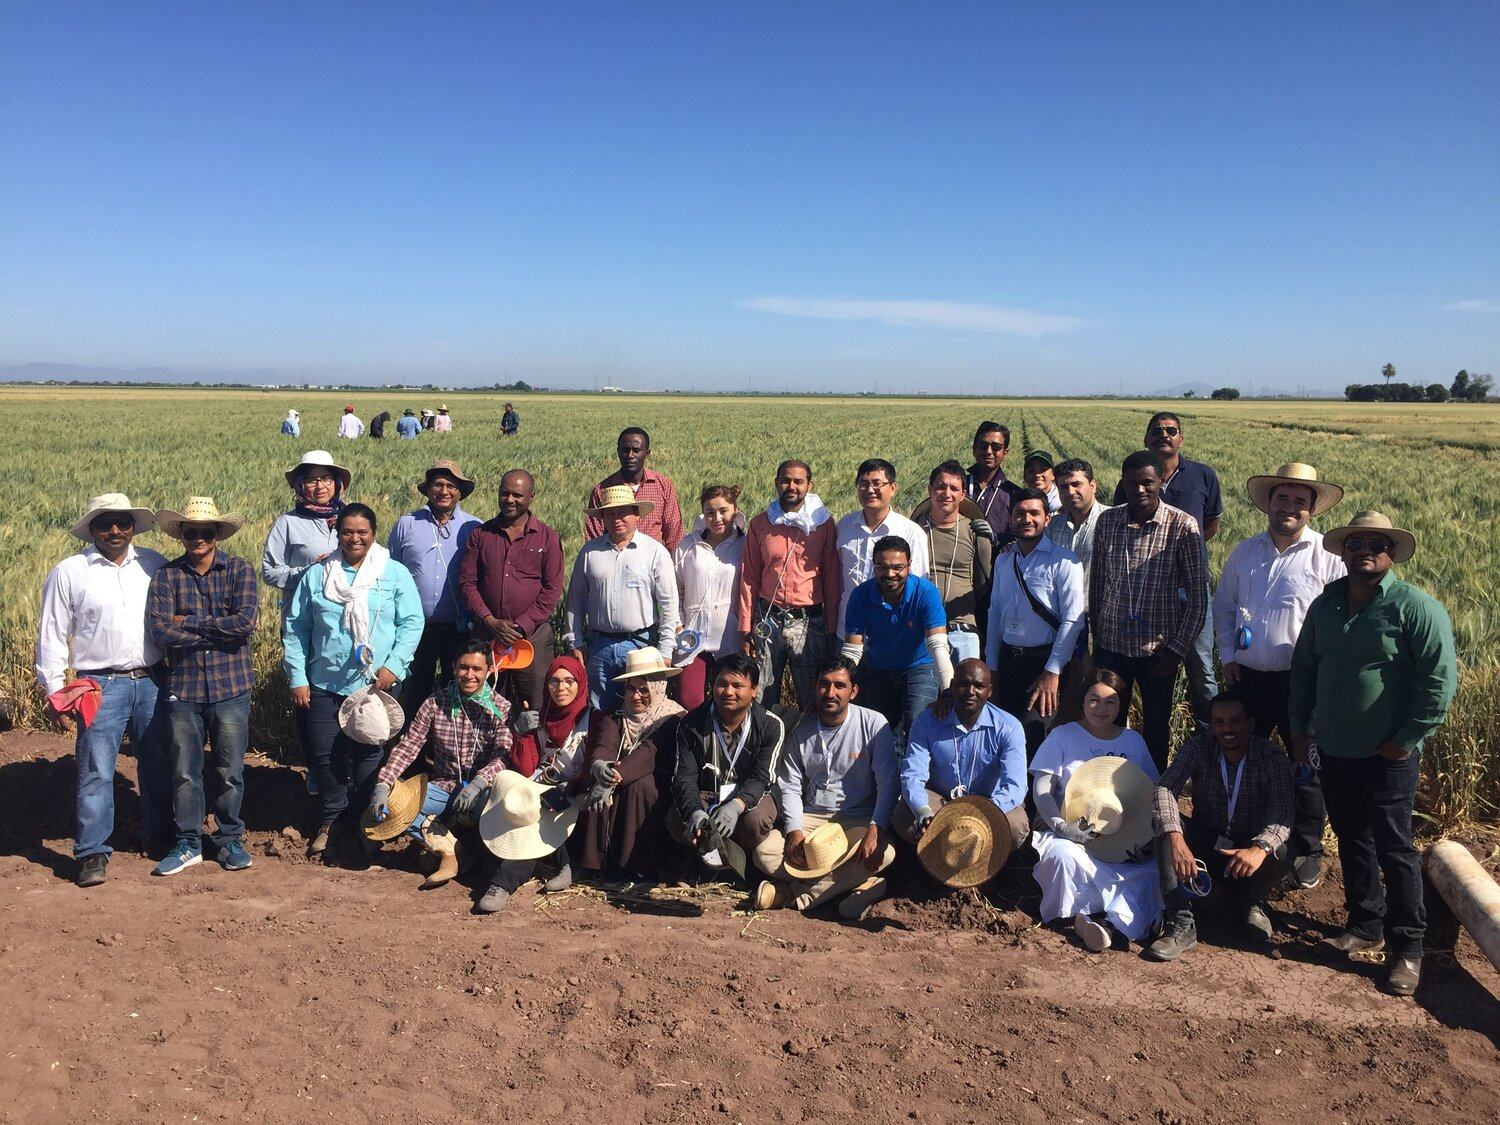 2019 CIMMYT BWIC Trainee Group in the field.